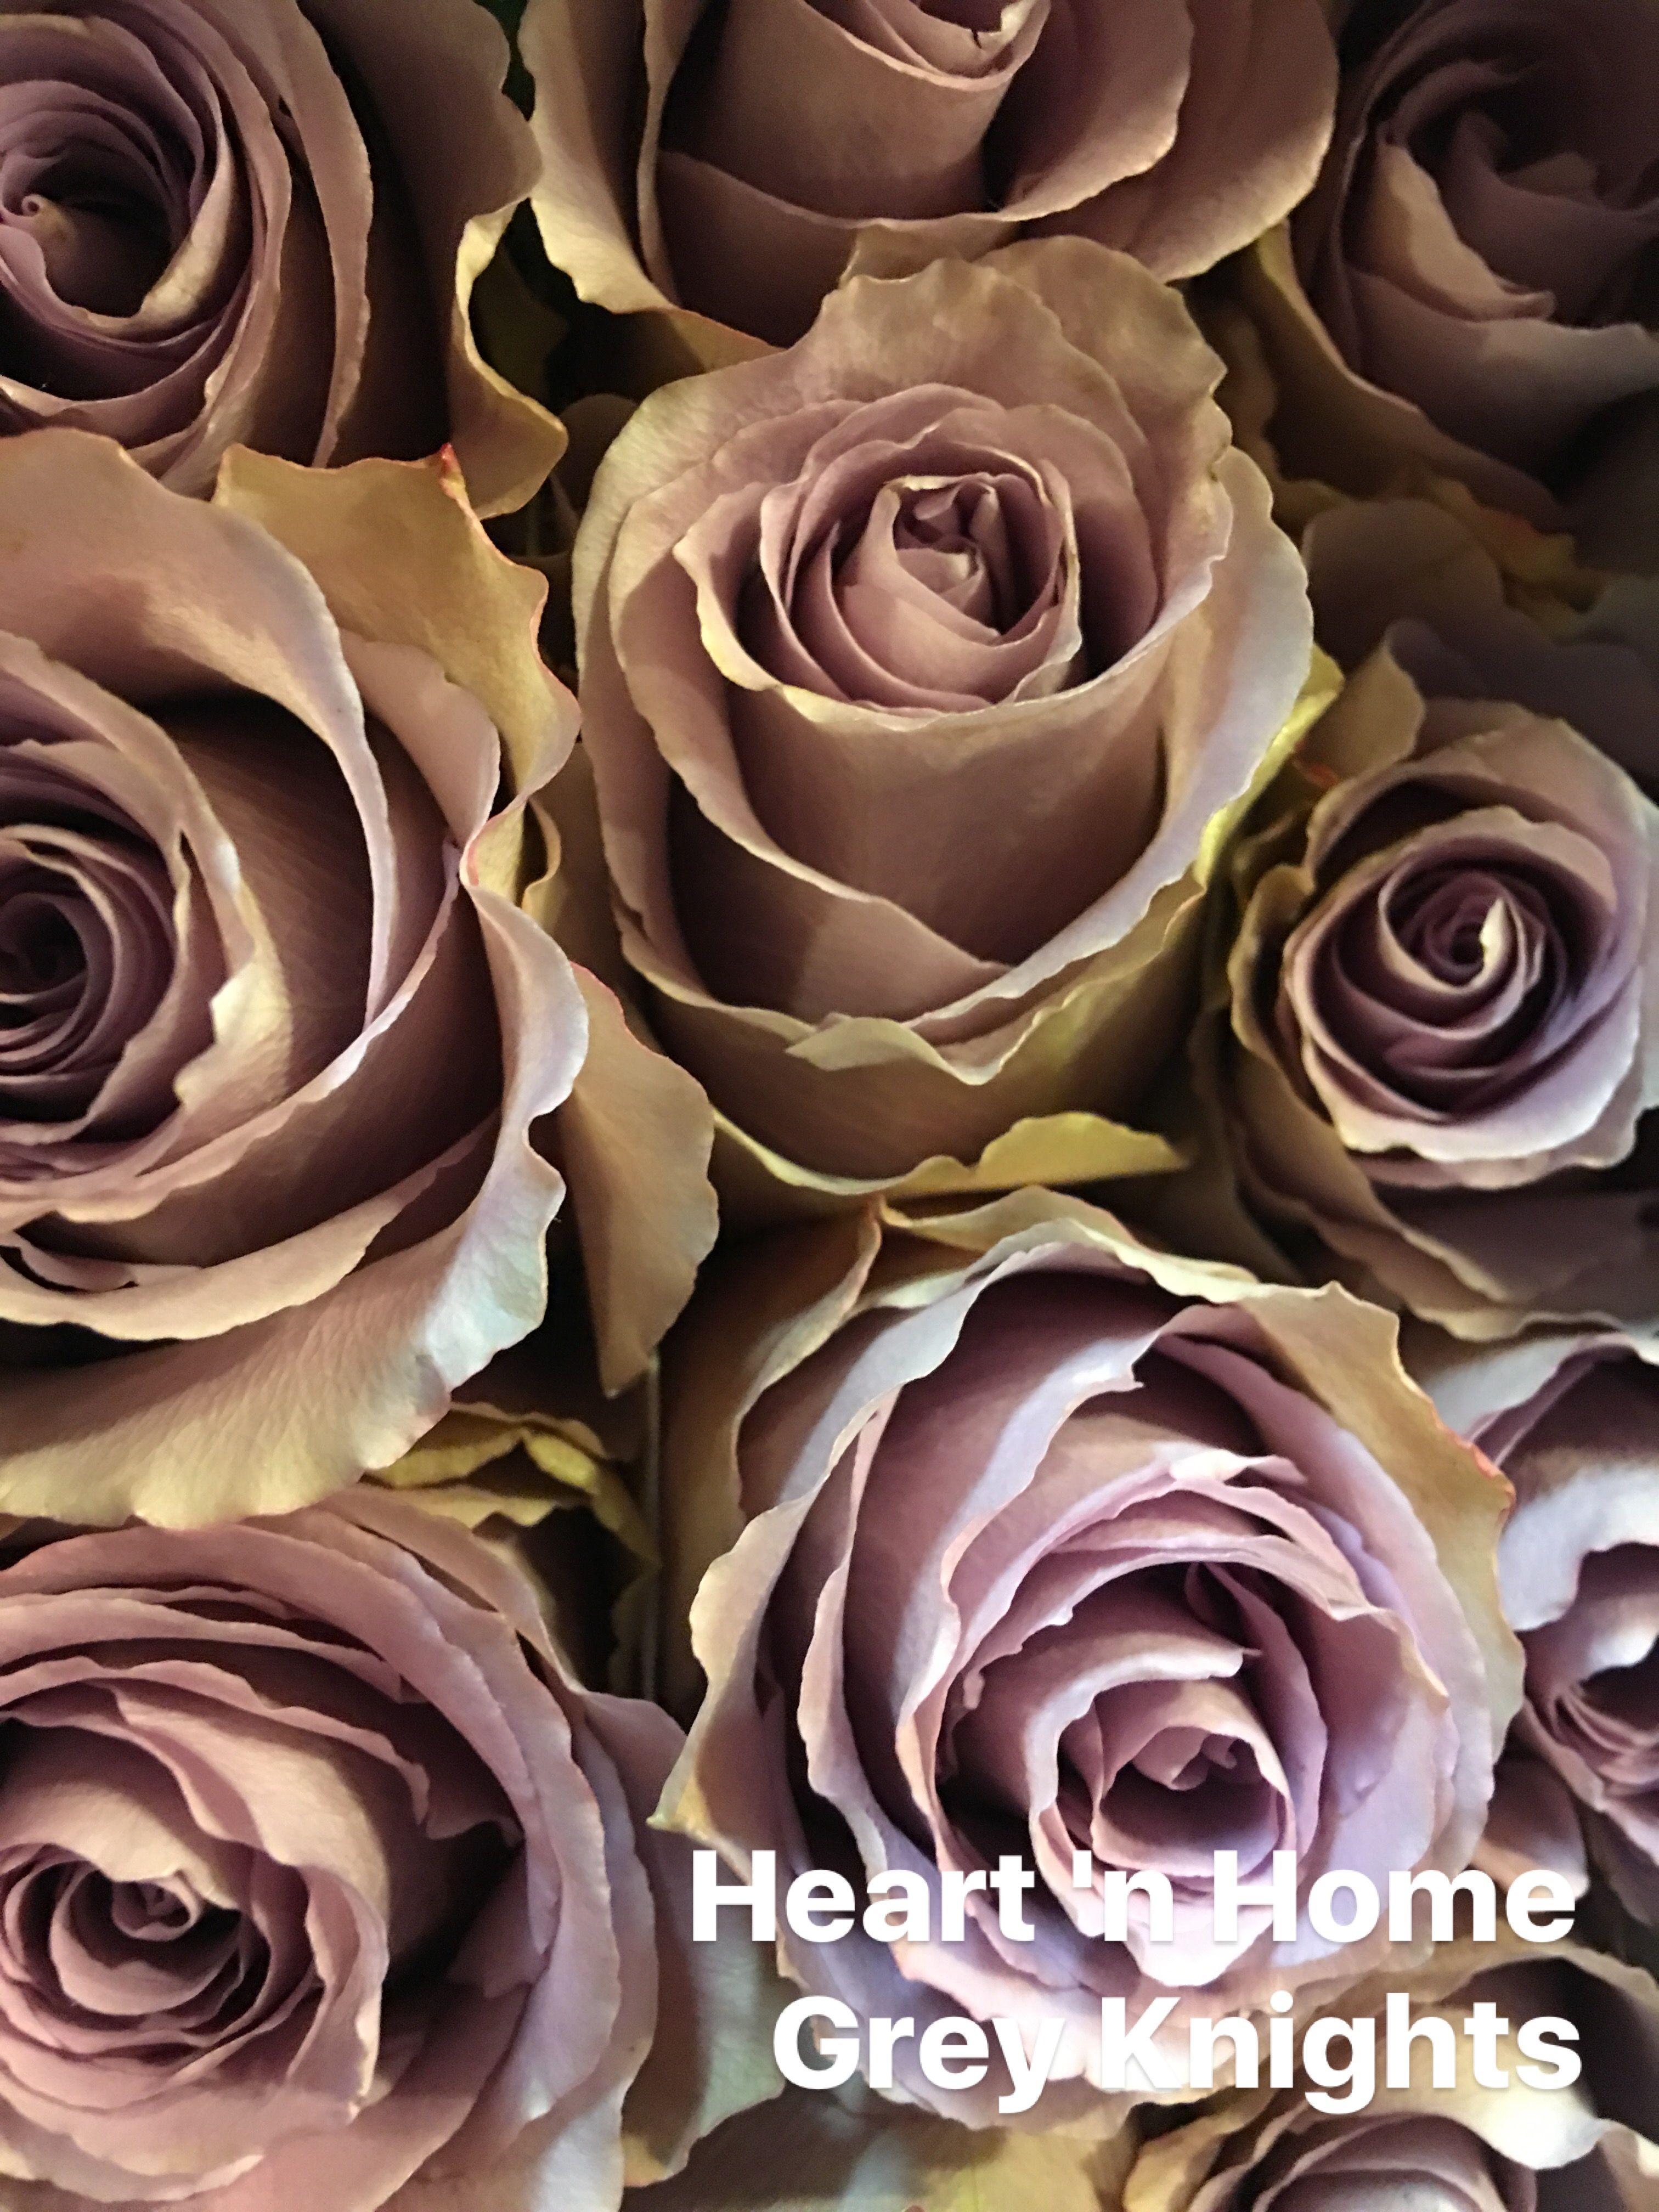 Home bulk roses peach roses - Grey Knights Roses 50 Cm